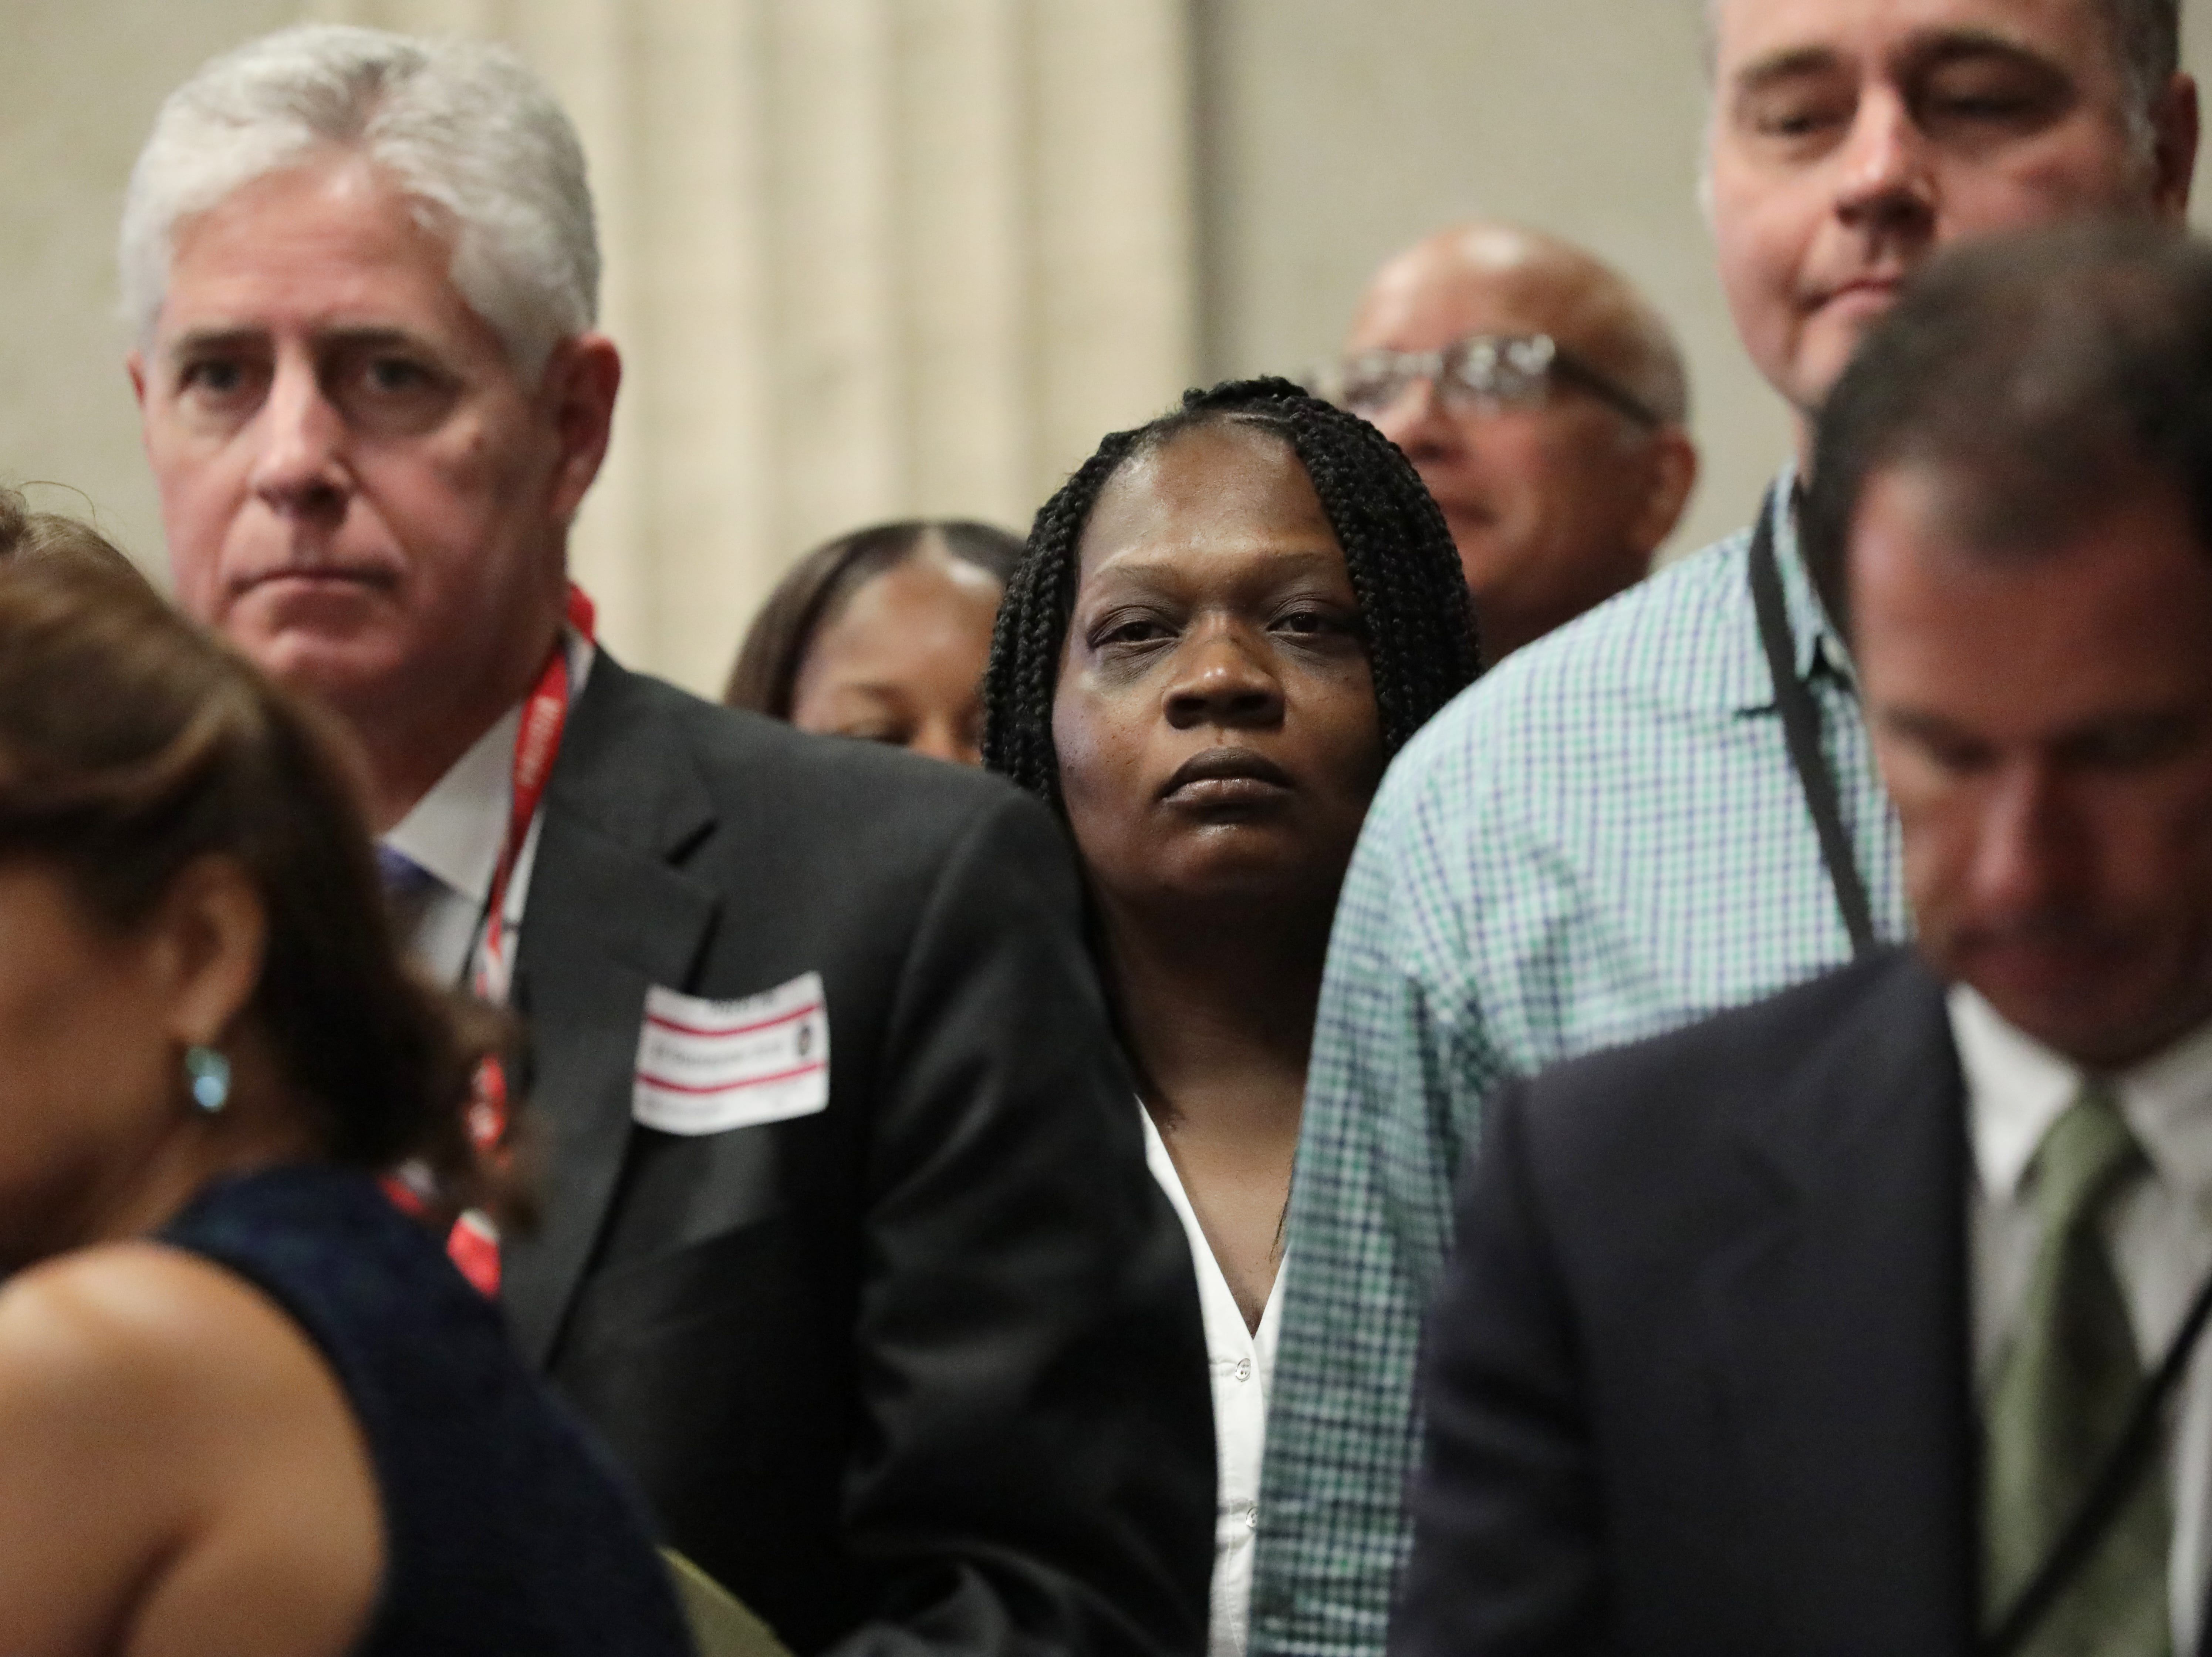 Tina Hunter, mother of Laquan McDonald, watches during the murder trial of Chicago police Officer Jason Van Dyke at the Leighton Criminal Court Building Sept. 24, 2018 in Chicago, Illinois. Van Dyke is charged with shooting and killing 17-year-old McDonald, who was walking away from police down a street holding a knife four years ago.